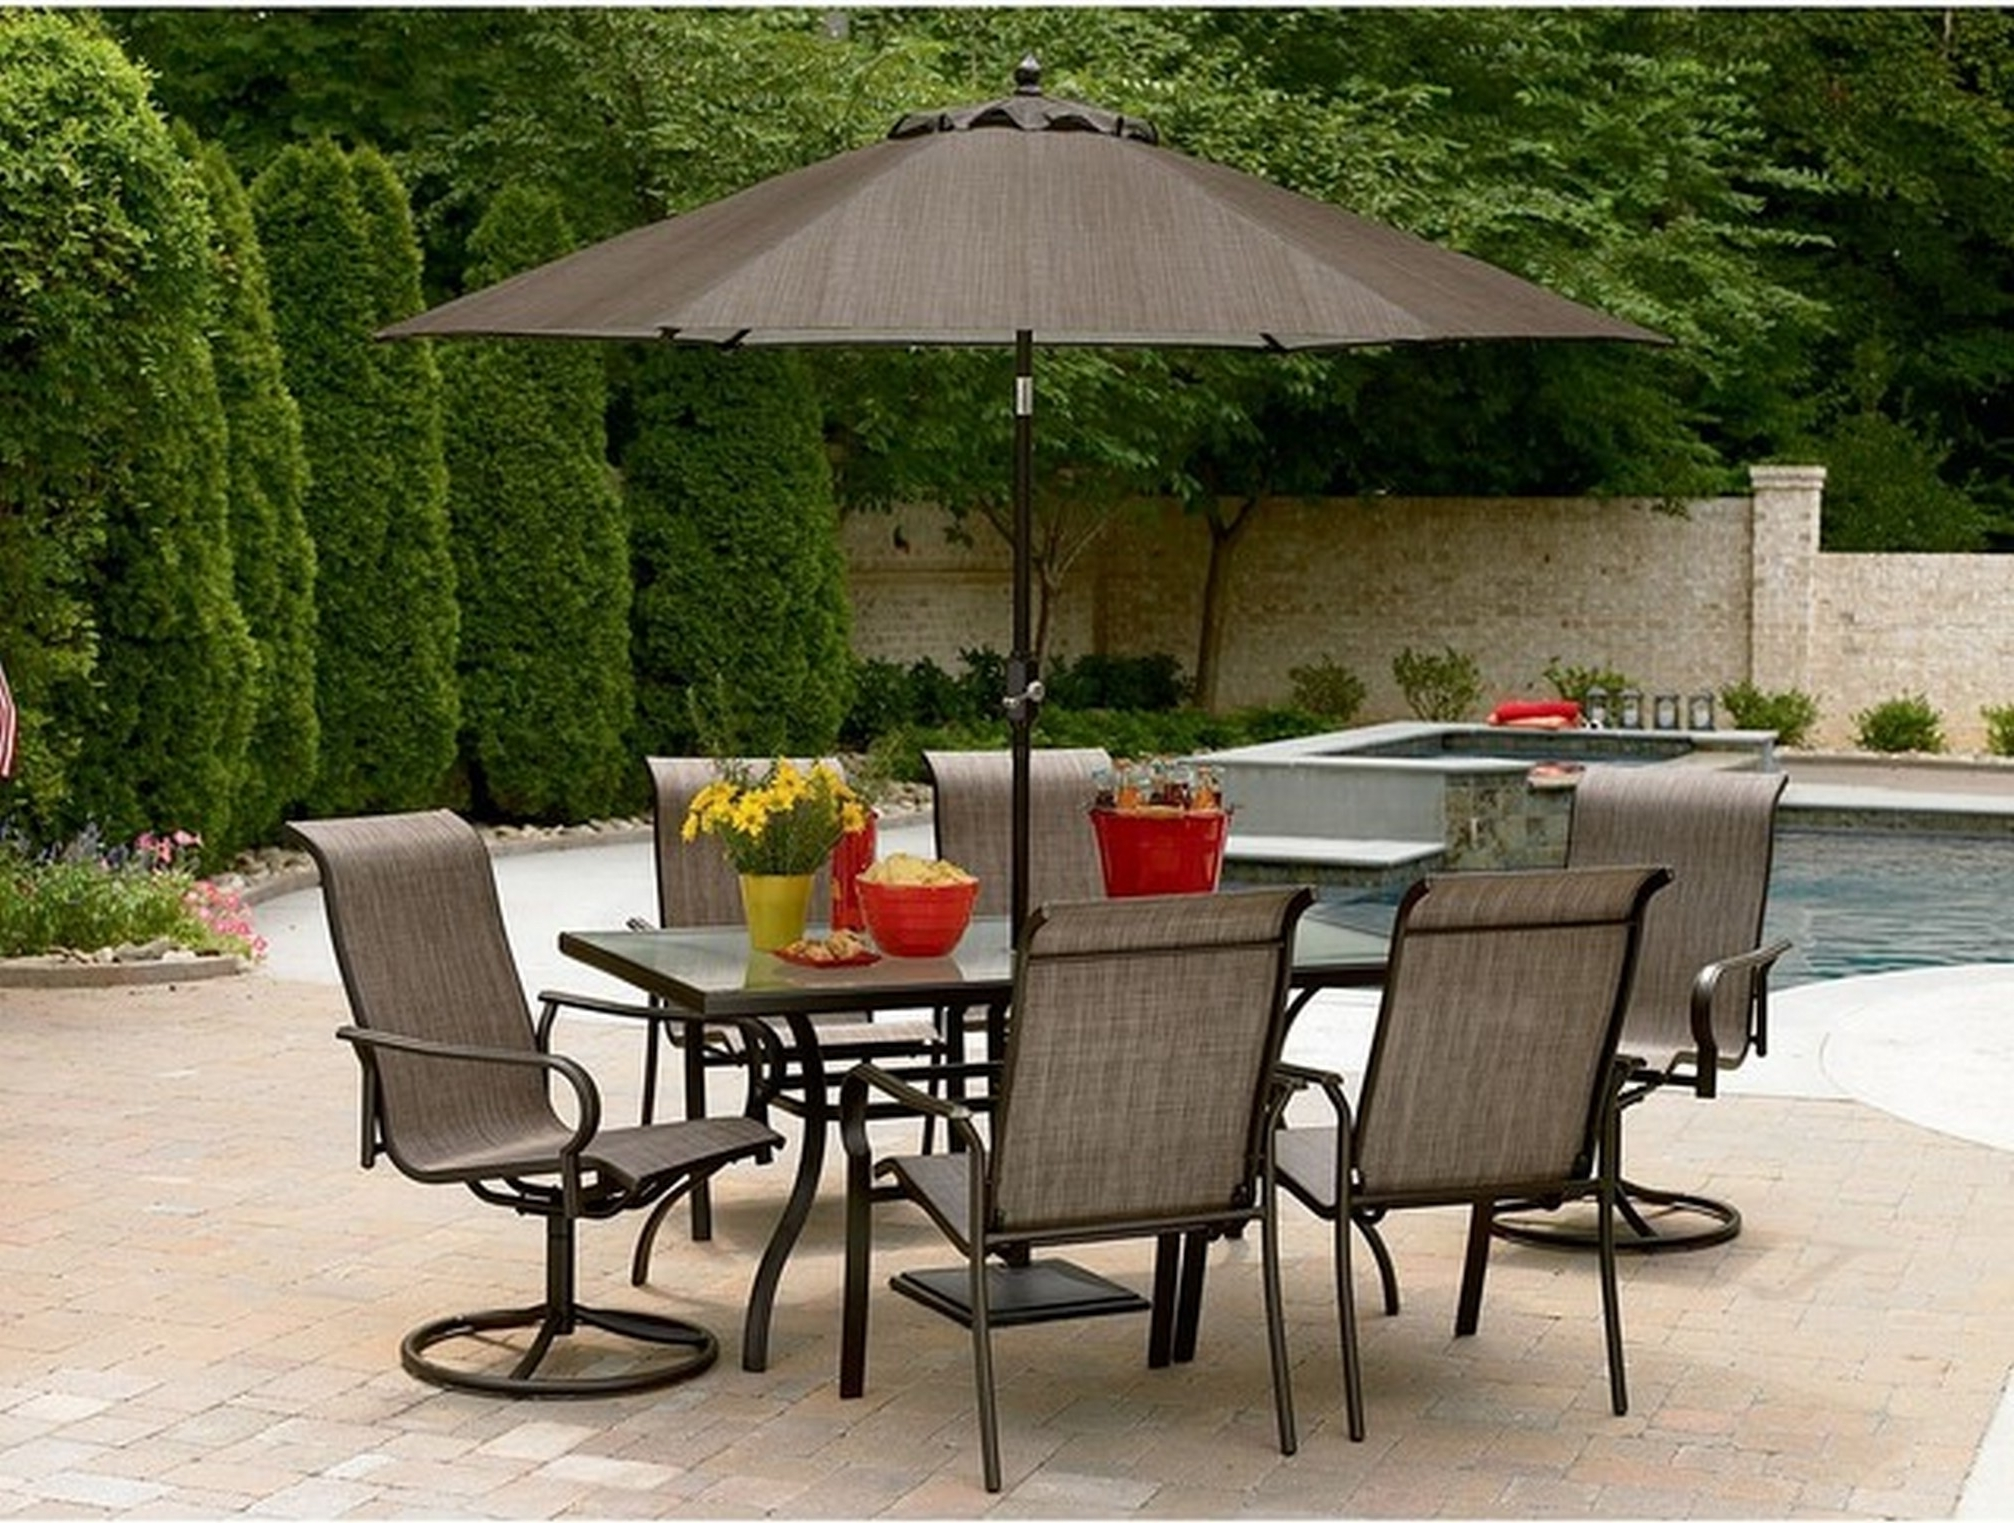 Free Standing Umbrellas For Patio Intended For Preferred Patios: Outstanding Patio Umbrella Walmart For Stunning Patio (View 8 of 20)